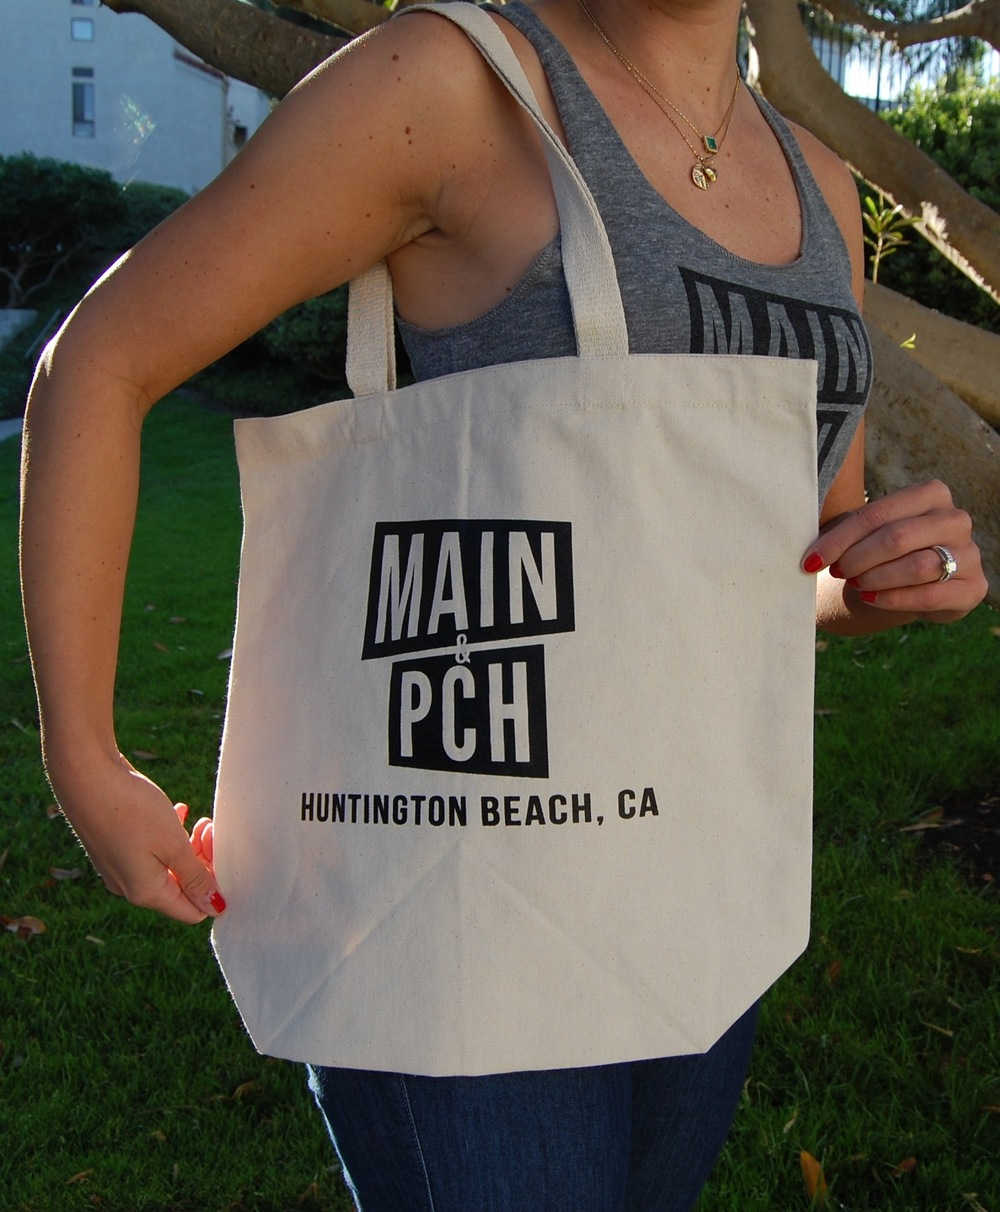 Our new Main & PCH recycled cotton canvas tote, available at our marketplace